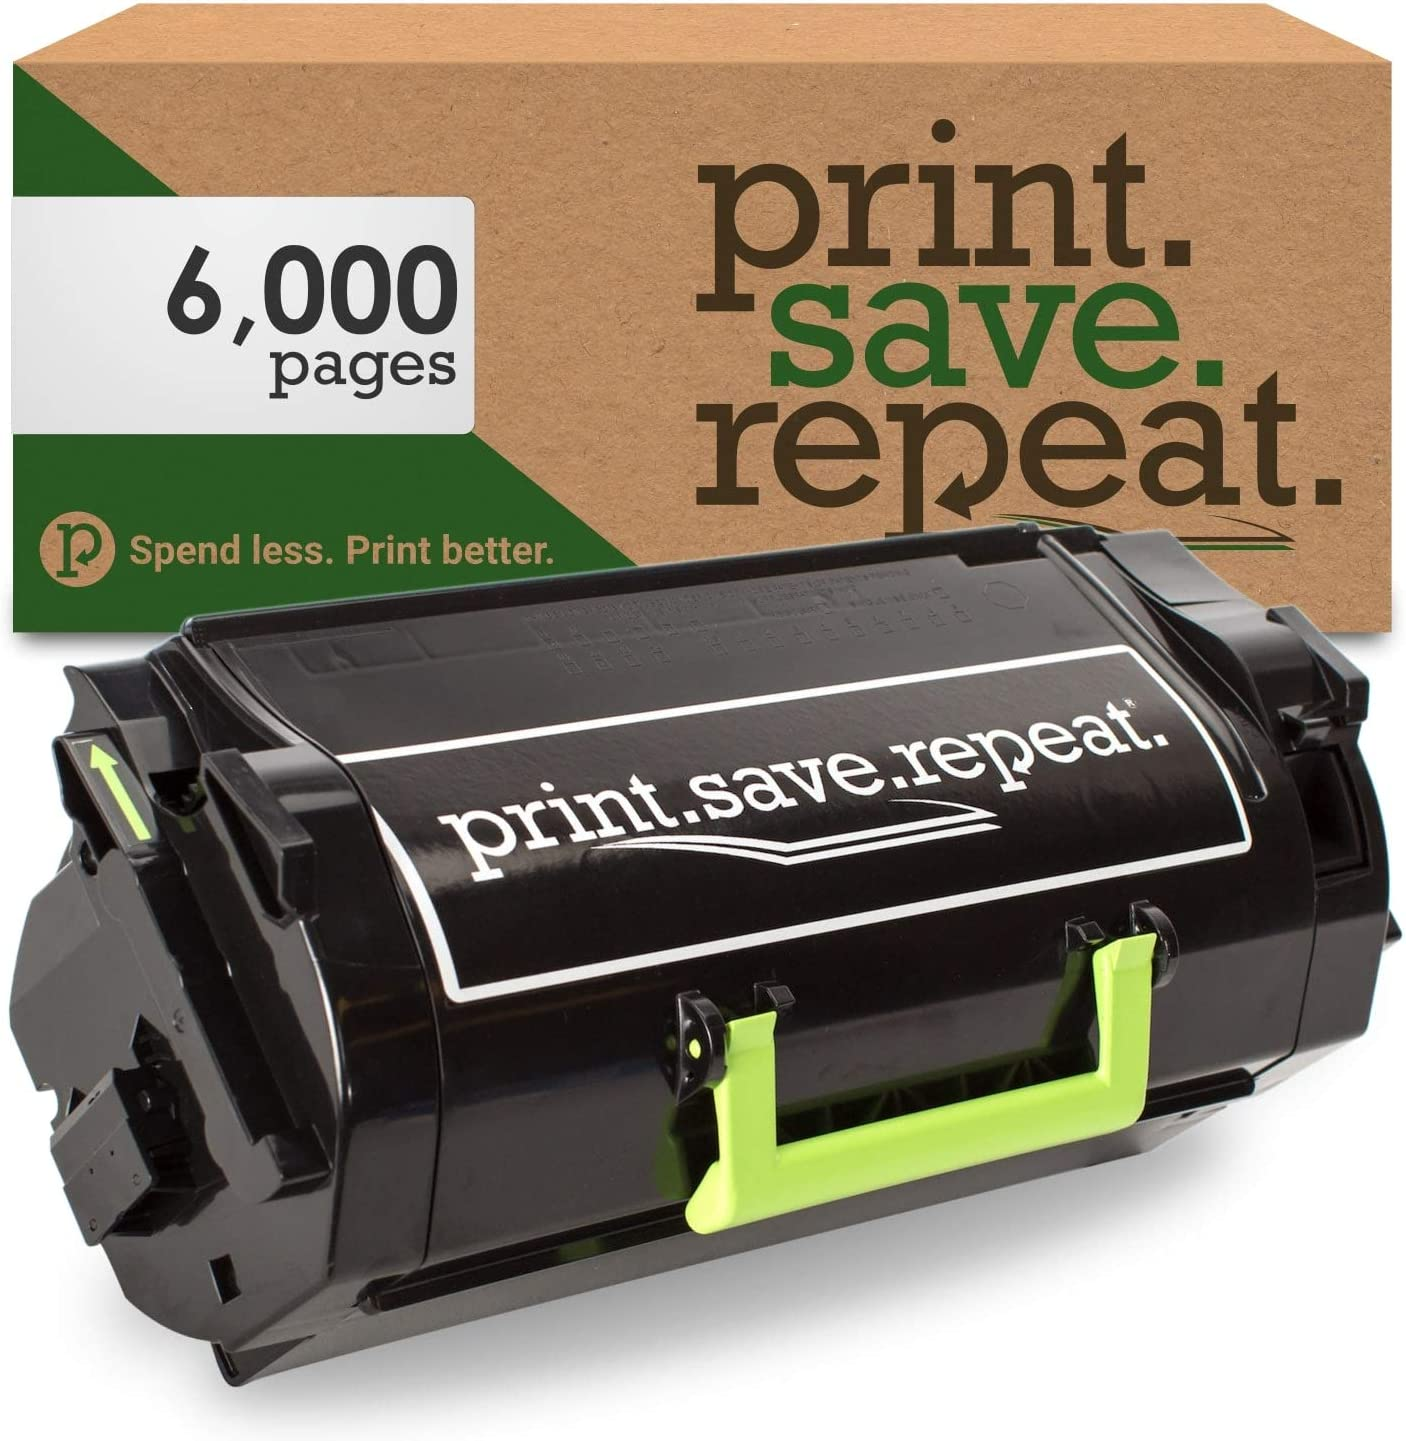 Dell T6J1J Remanufactured Toner Cartridge for B5460 Print.Save.Repeat B5465 6,000 Pages